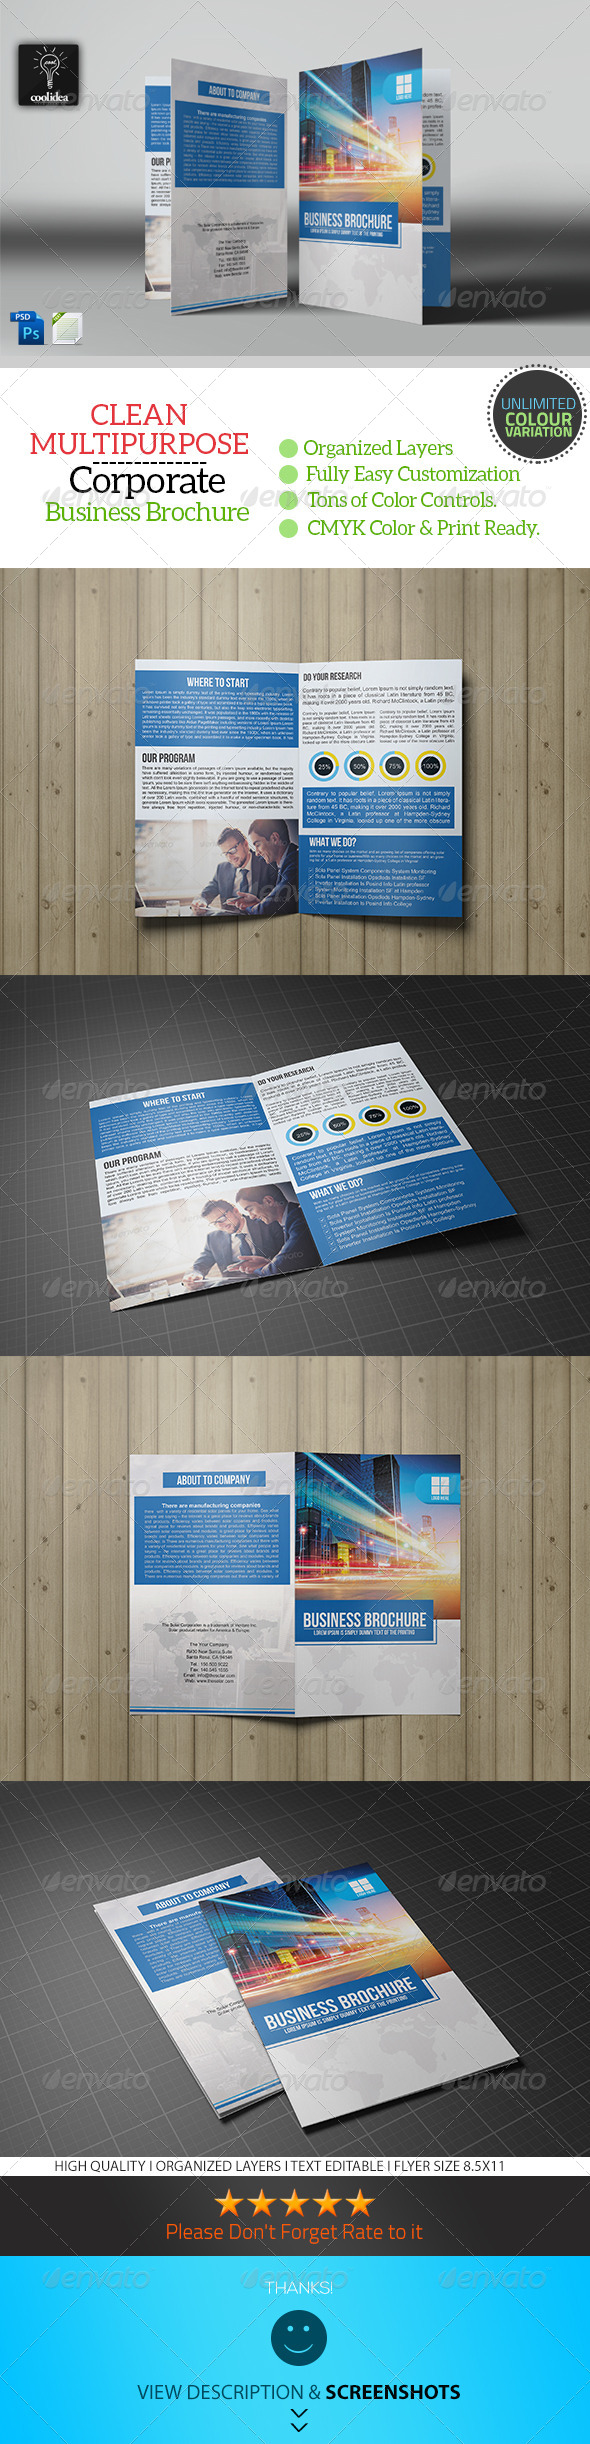 Business Brochure Bifold Template Vol03 - Corporate Brochures